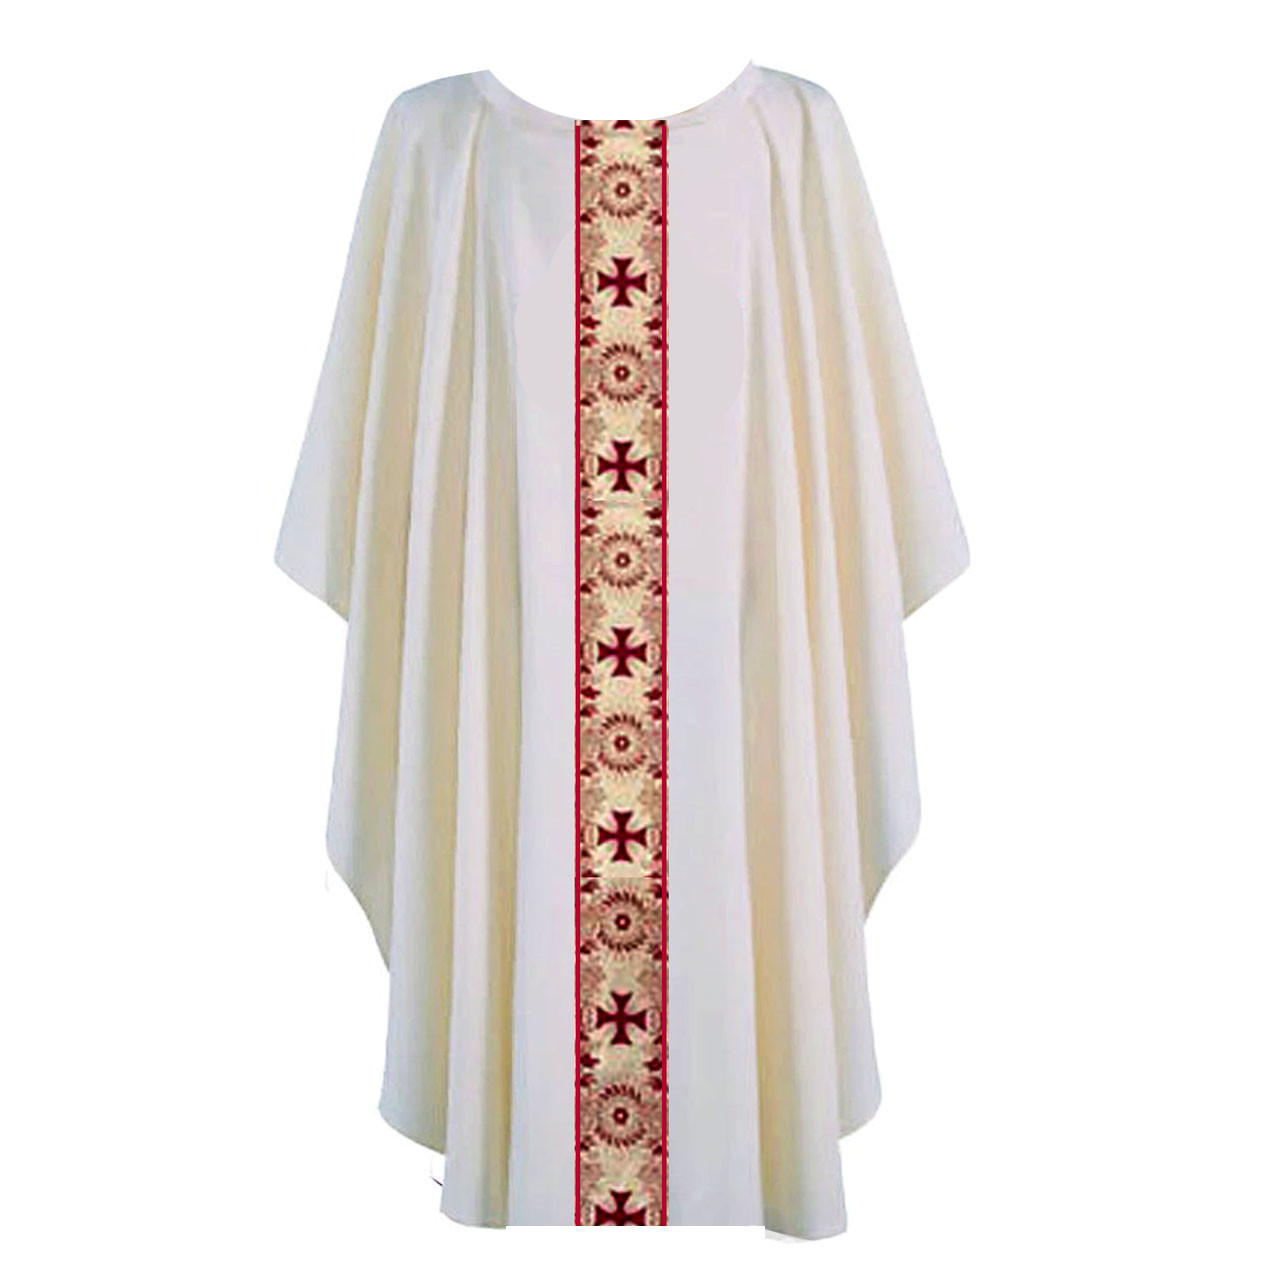 850 Off White Chasuble from Harbro